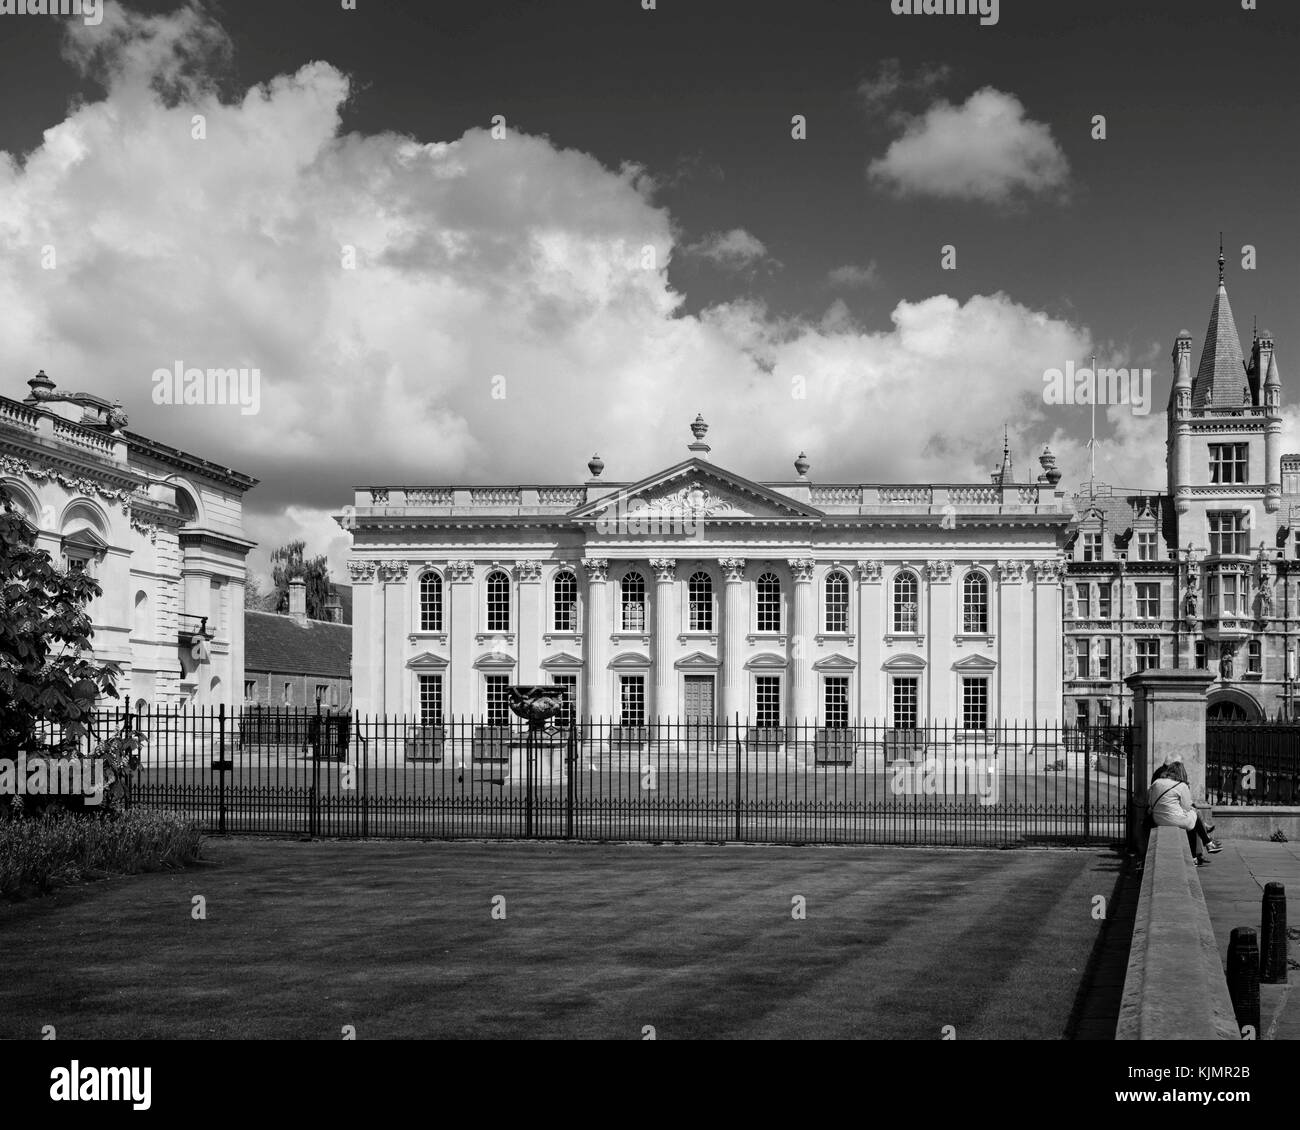 Cambridge University Senate House, Old Schools and Gonville & Caius College on King's Parade - Stock Image